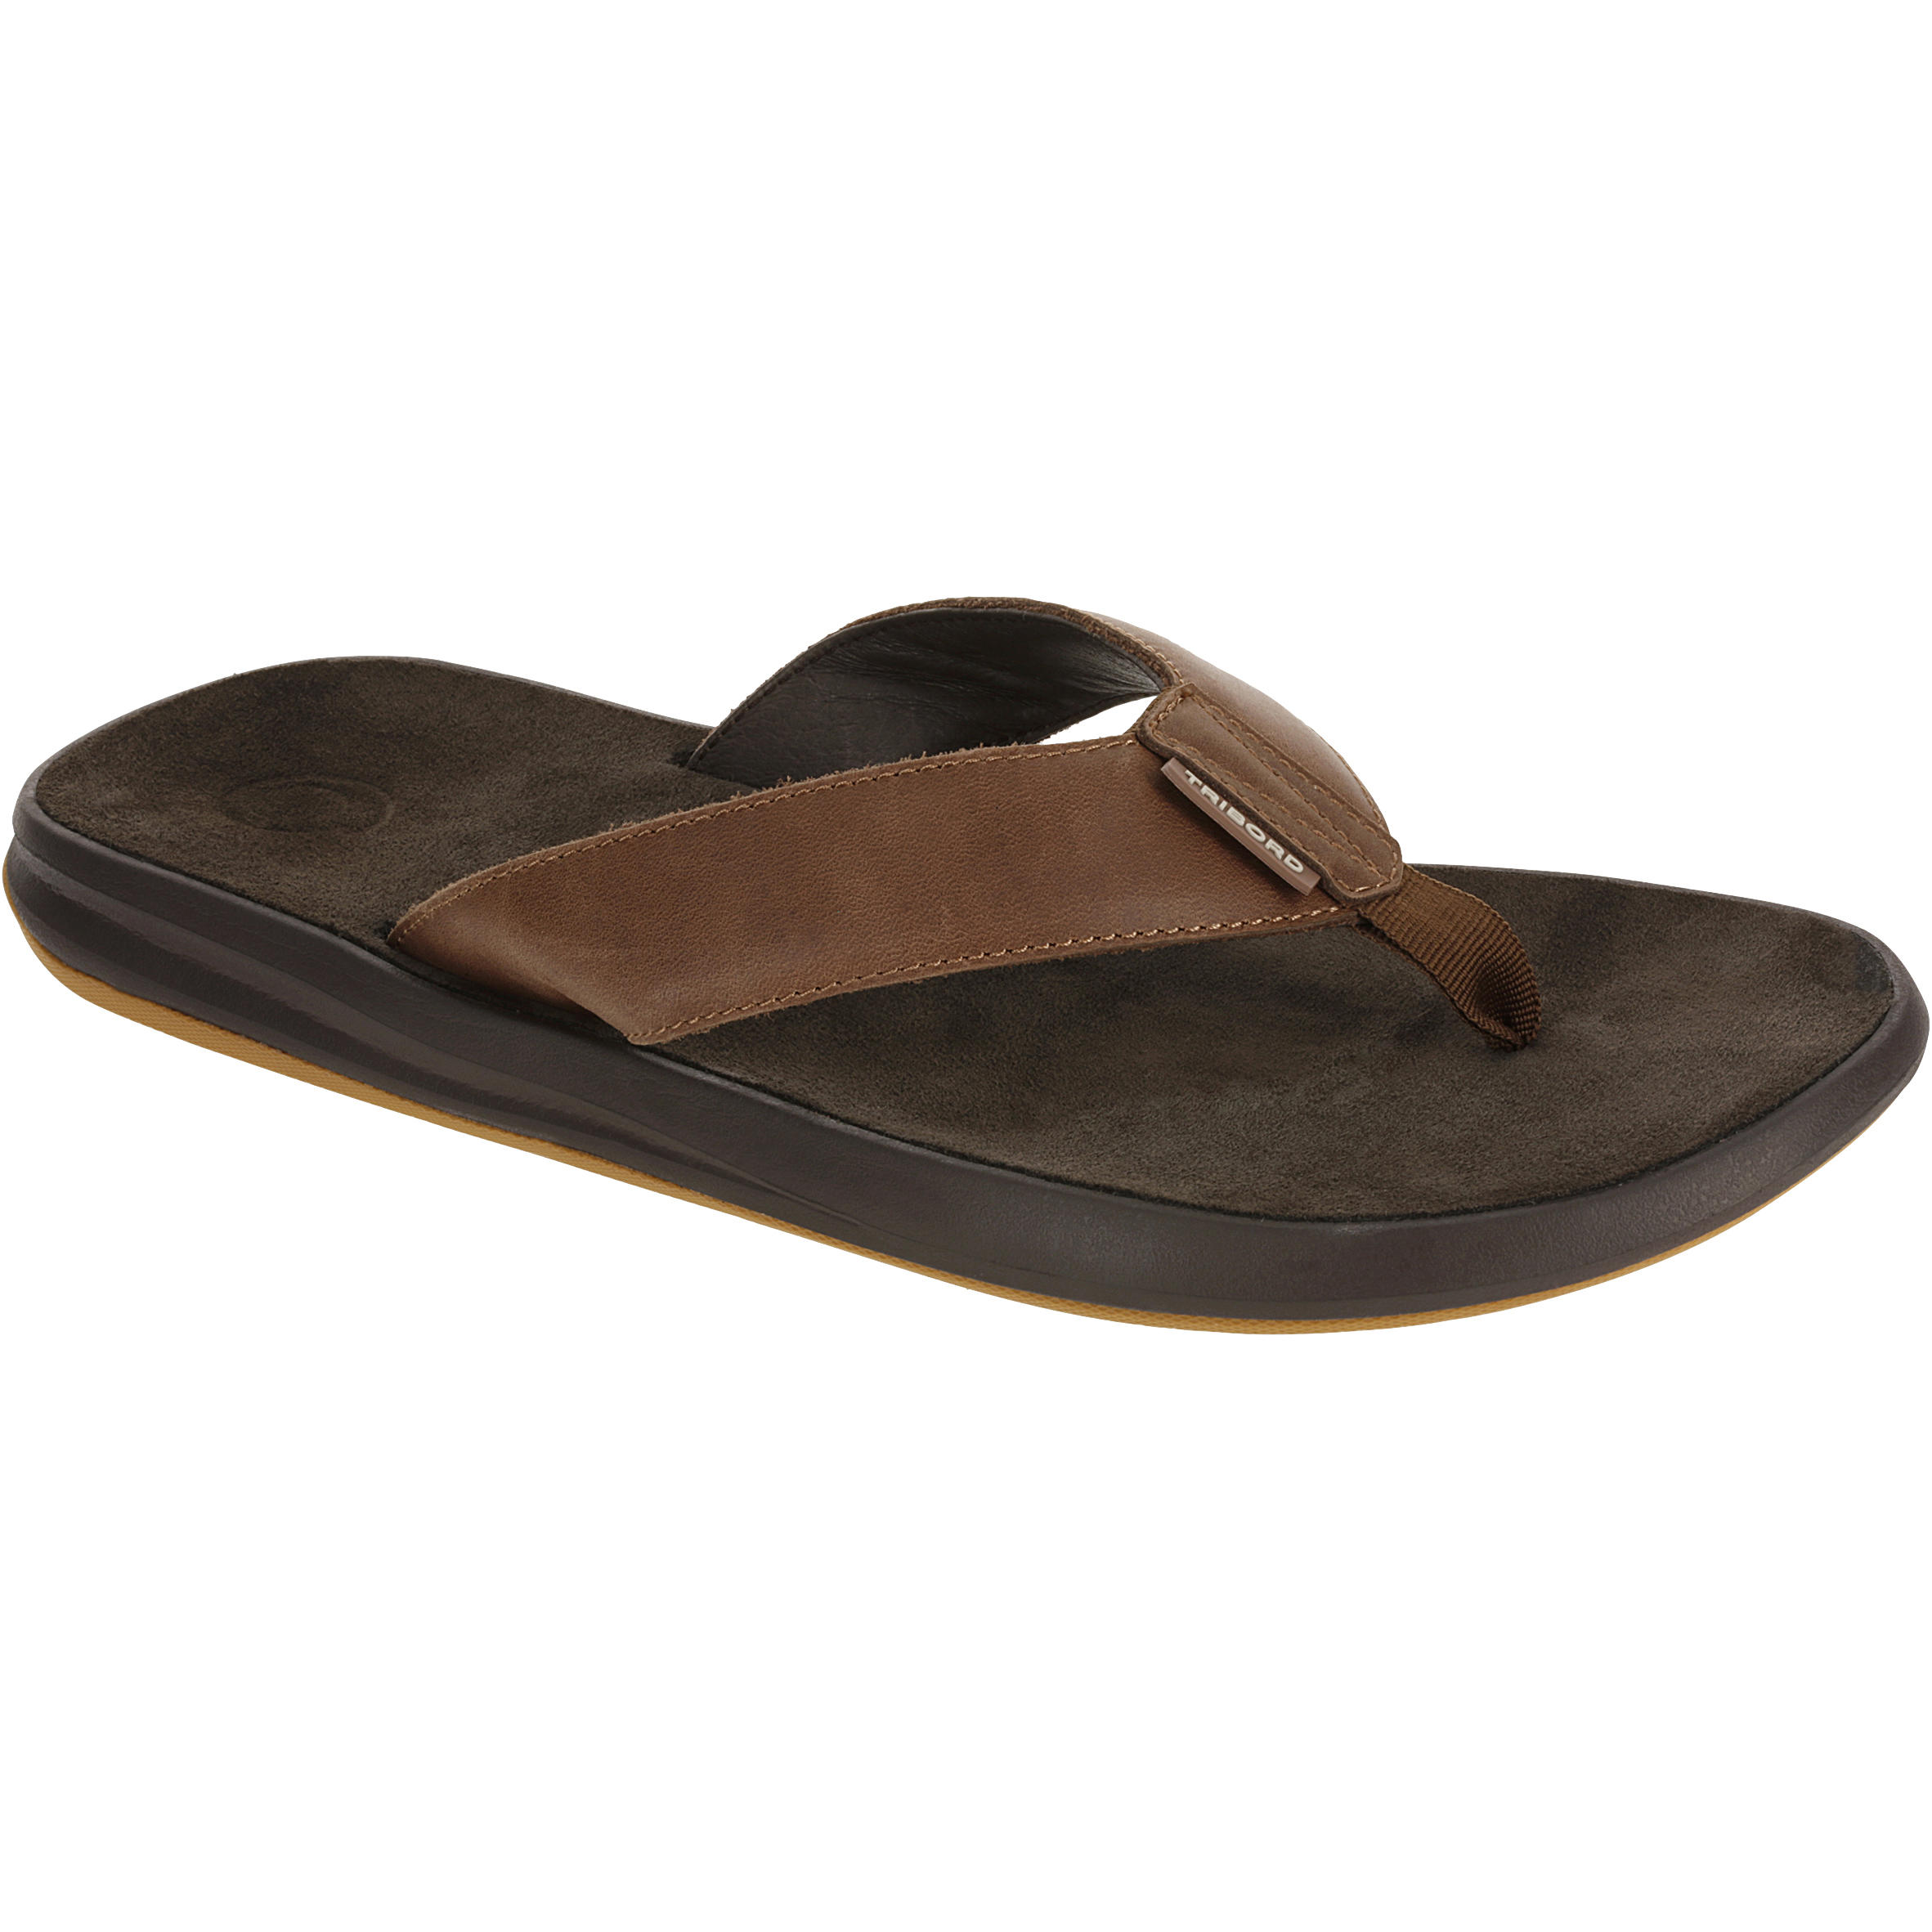 TO 950 M Men's Leather Flip-Flops - Brown